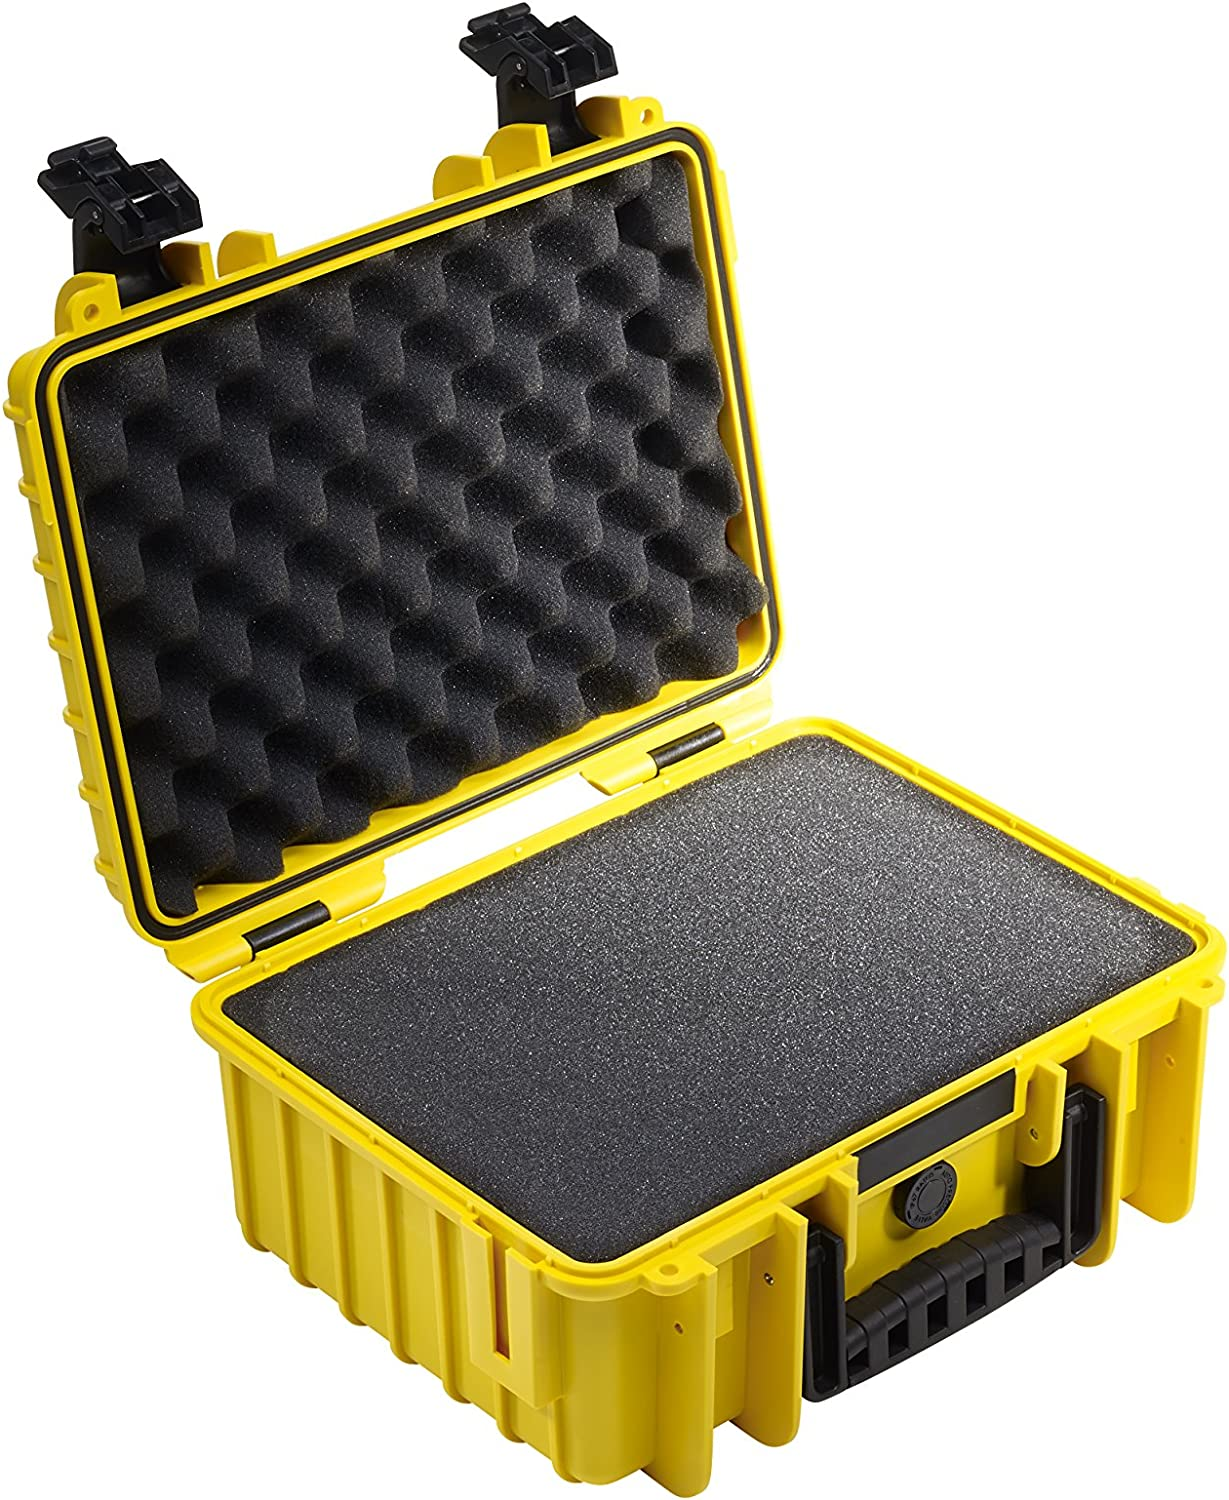 The Original SI B/&W outdoor.cases type 1000 with pre-cut foam